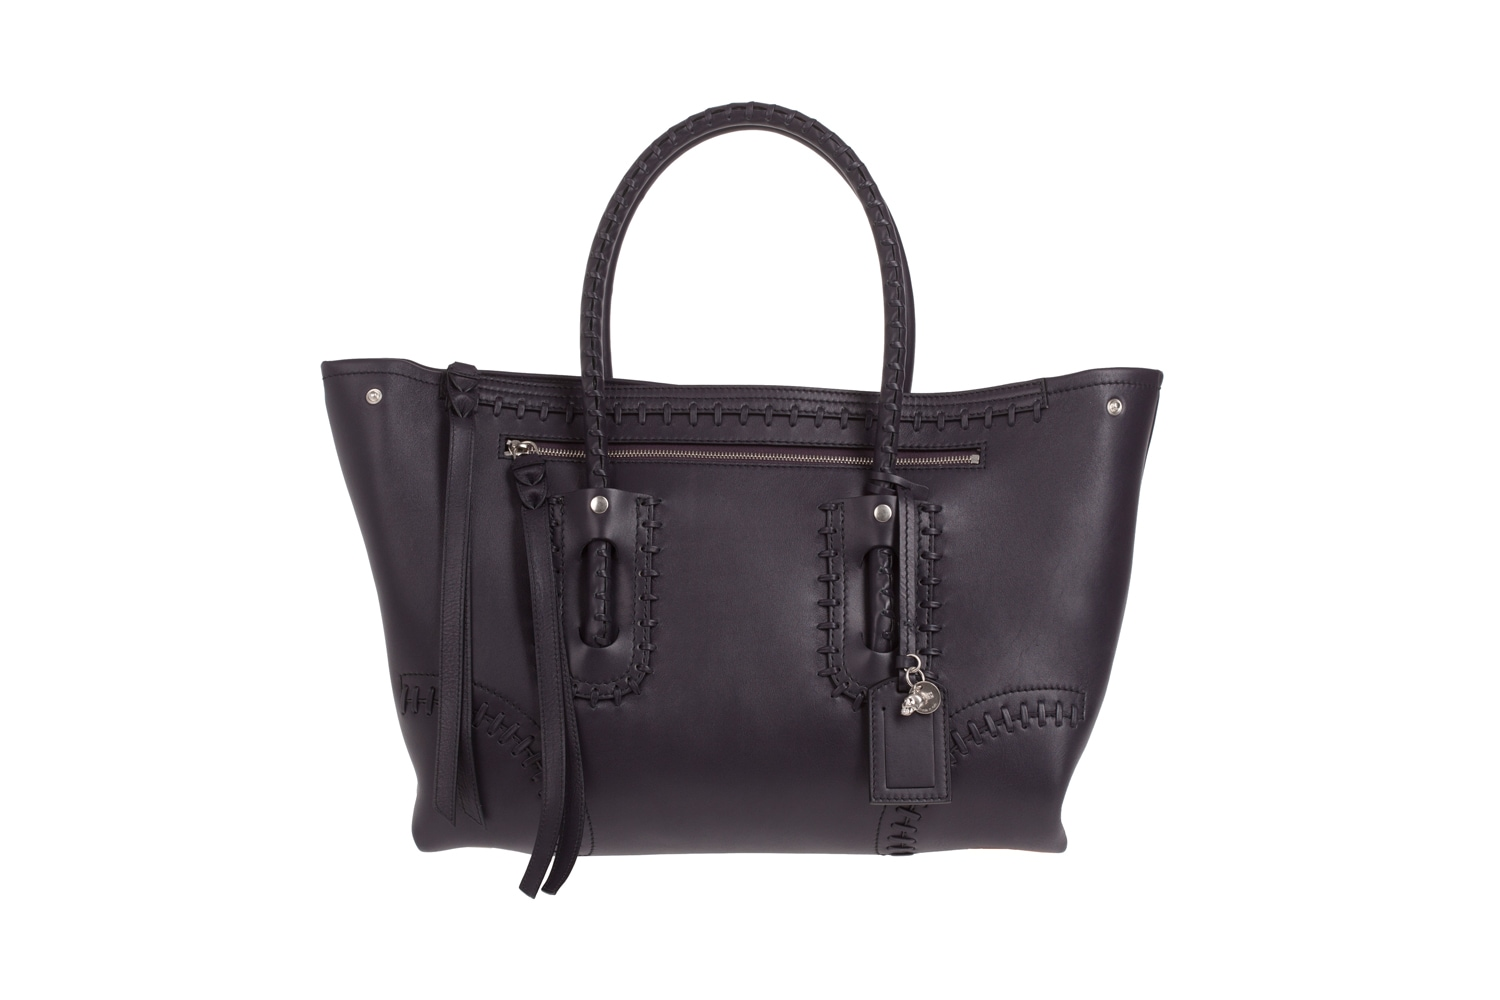 FOLK TOTE by Alexander McQueen in black leather AW12